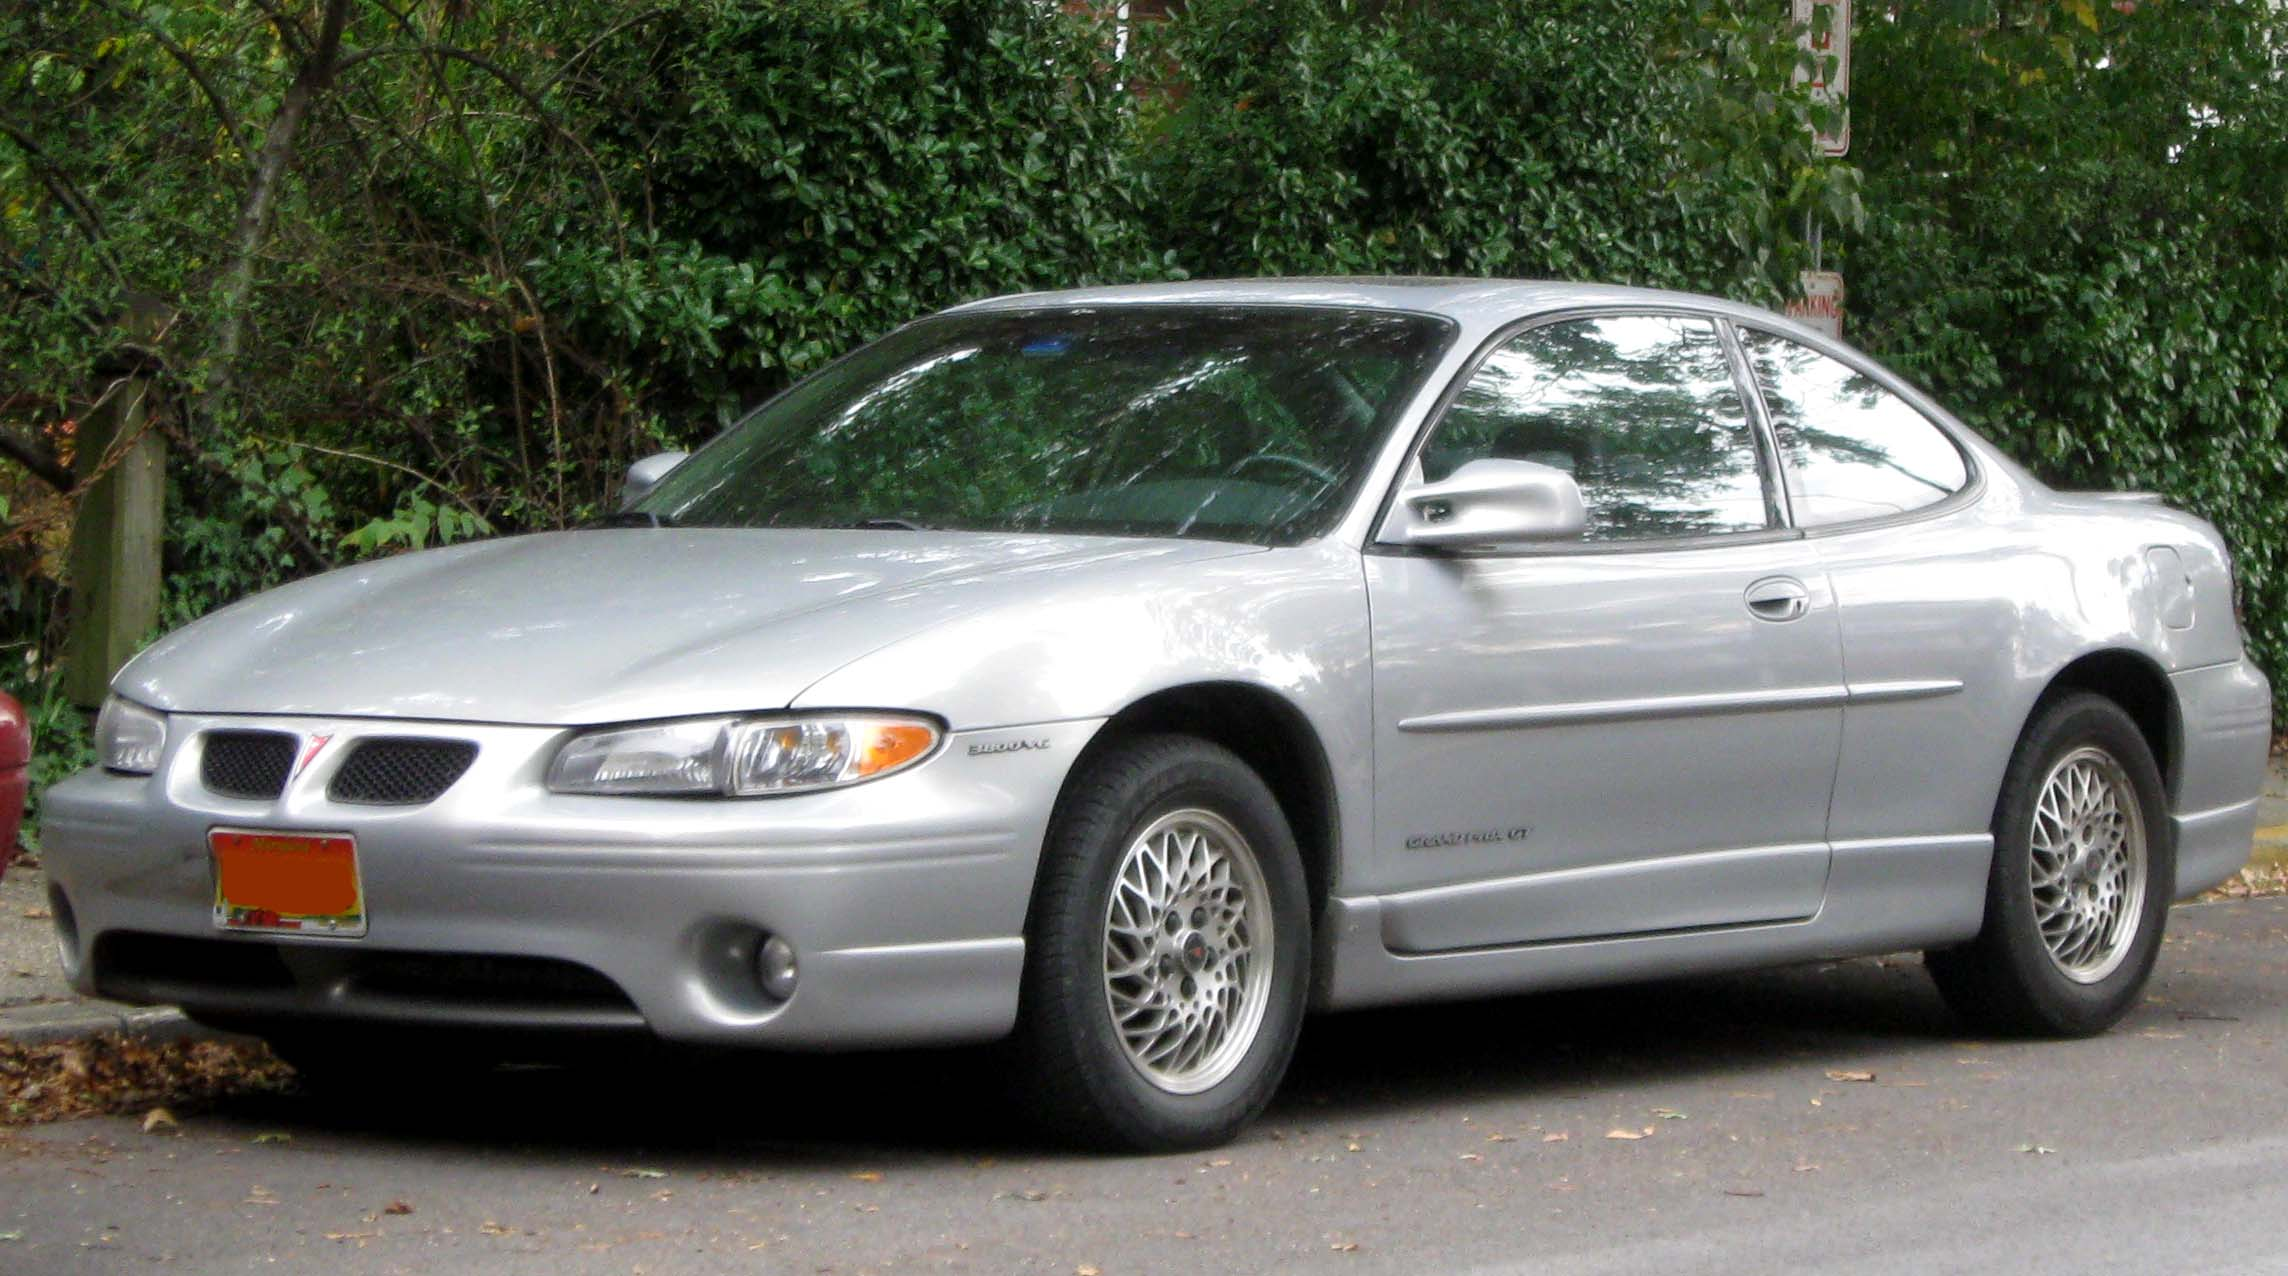 File:Pontiac Grand Prix GT coupe -- 10-12-2009.jpg